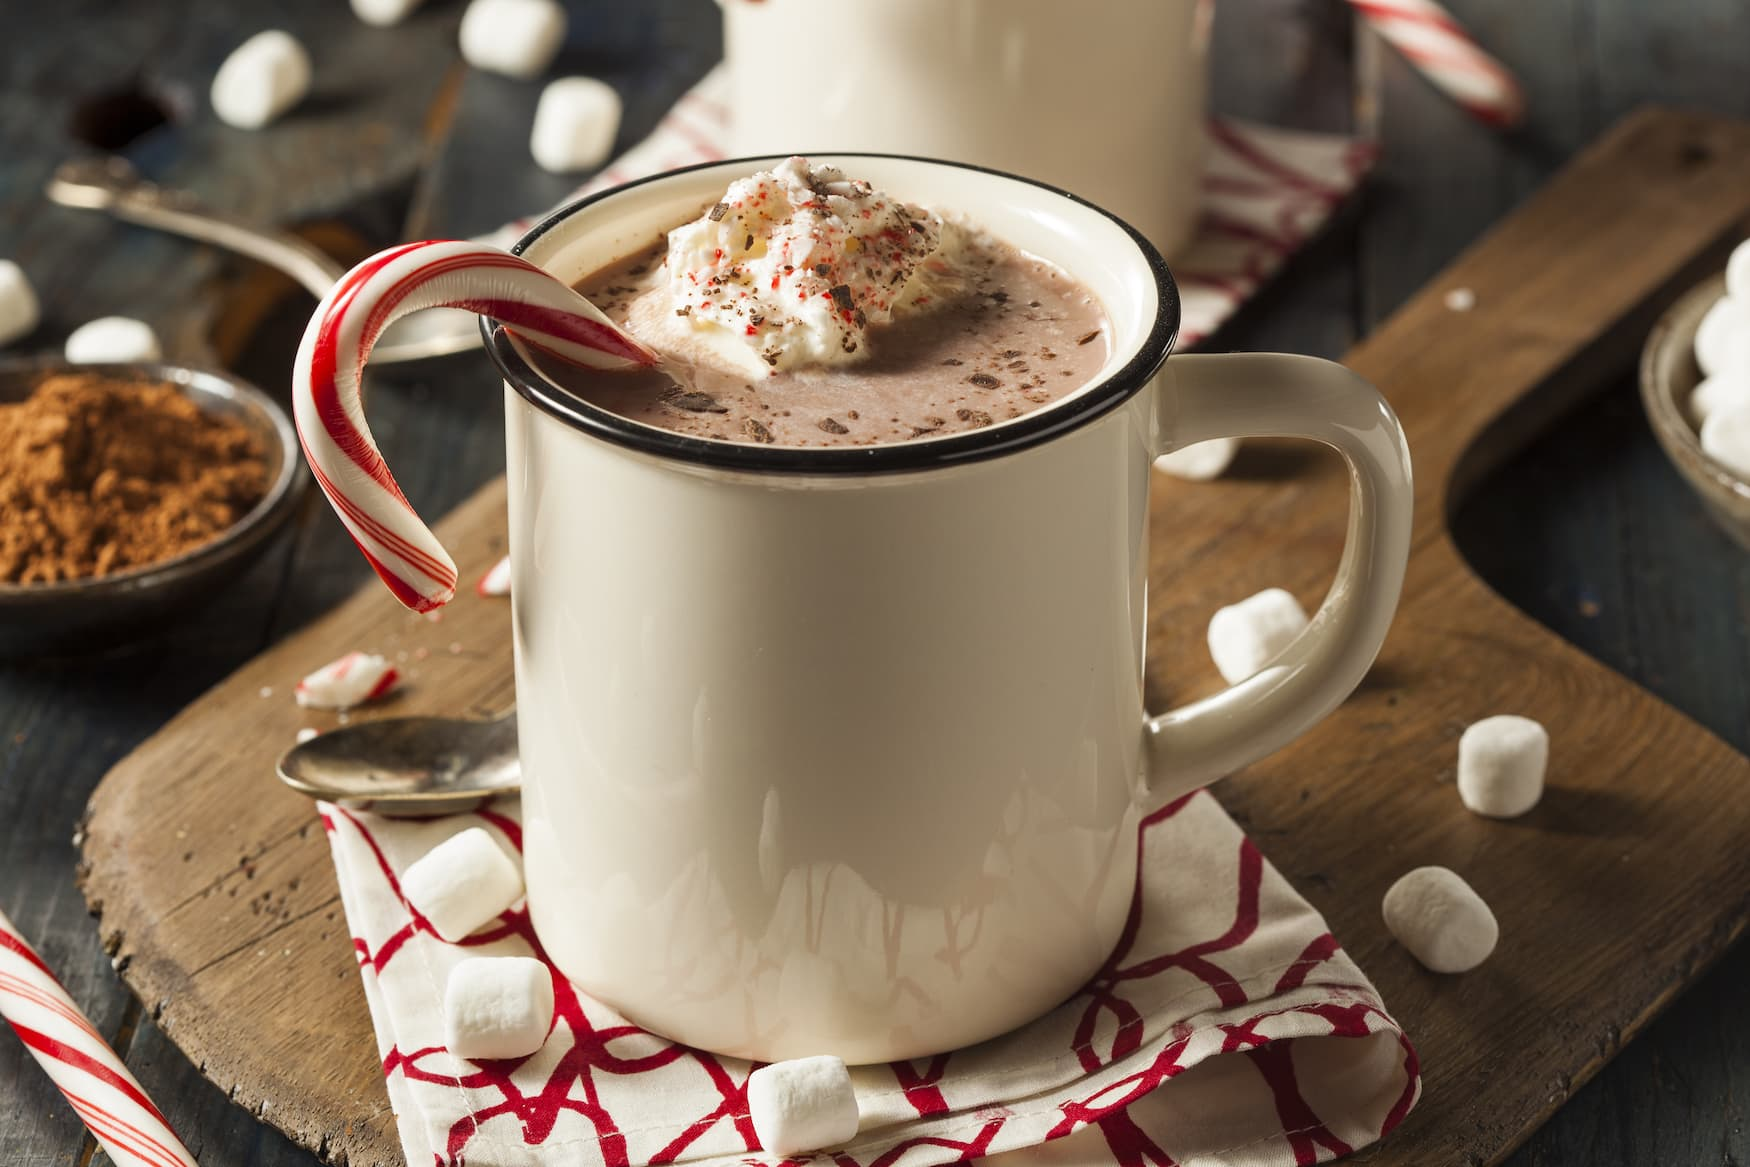 Boozy Hot Mint Chocolate in Grossbritannien an Weihnachten